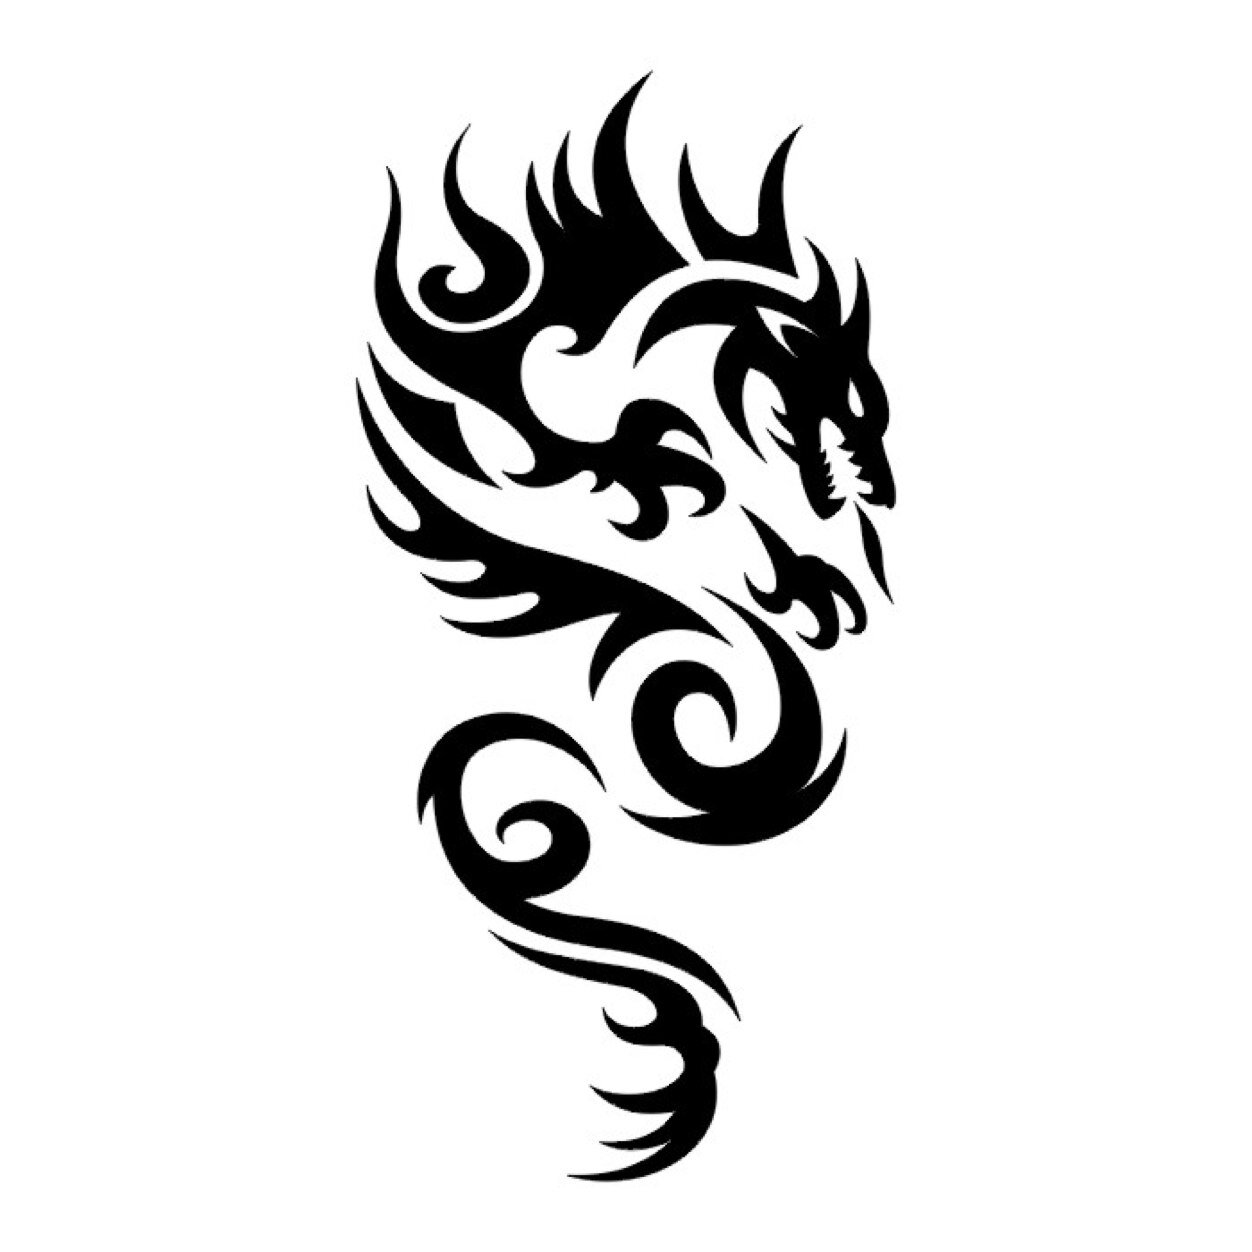 Interior Nice Designs 52 latest tribal dragon tattoos designs nice and small tattoo design